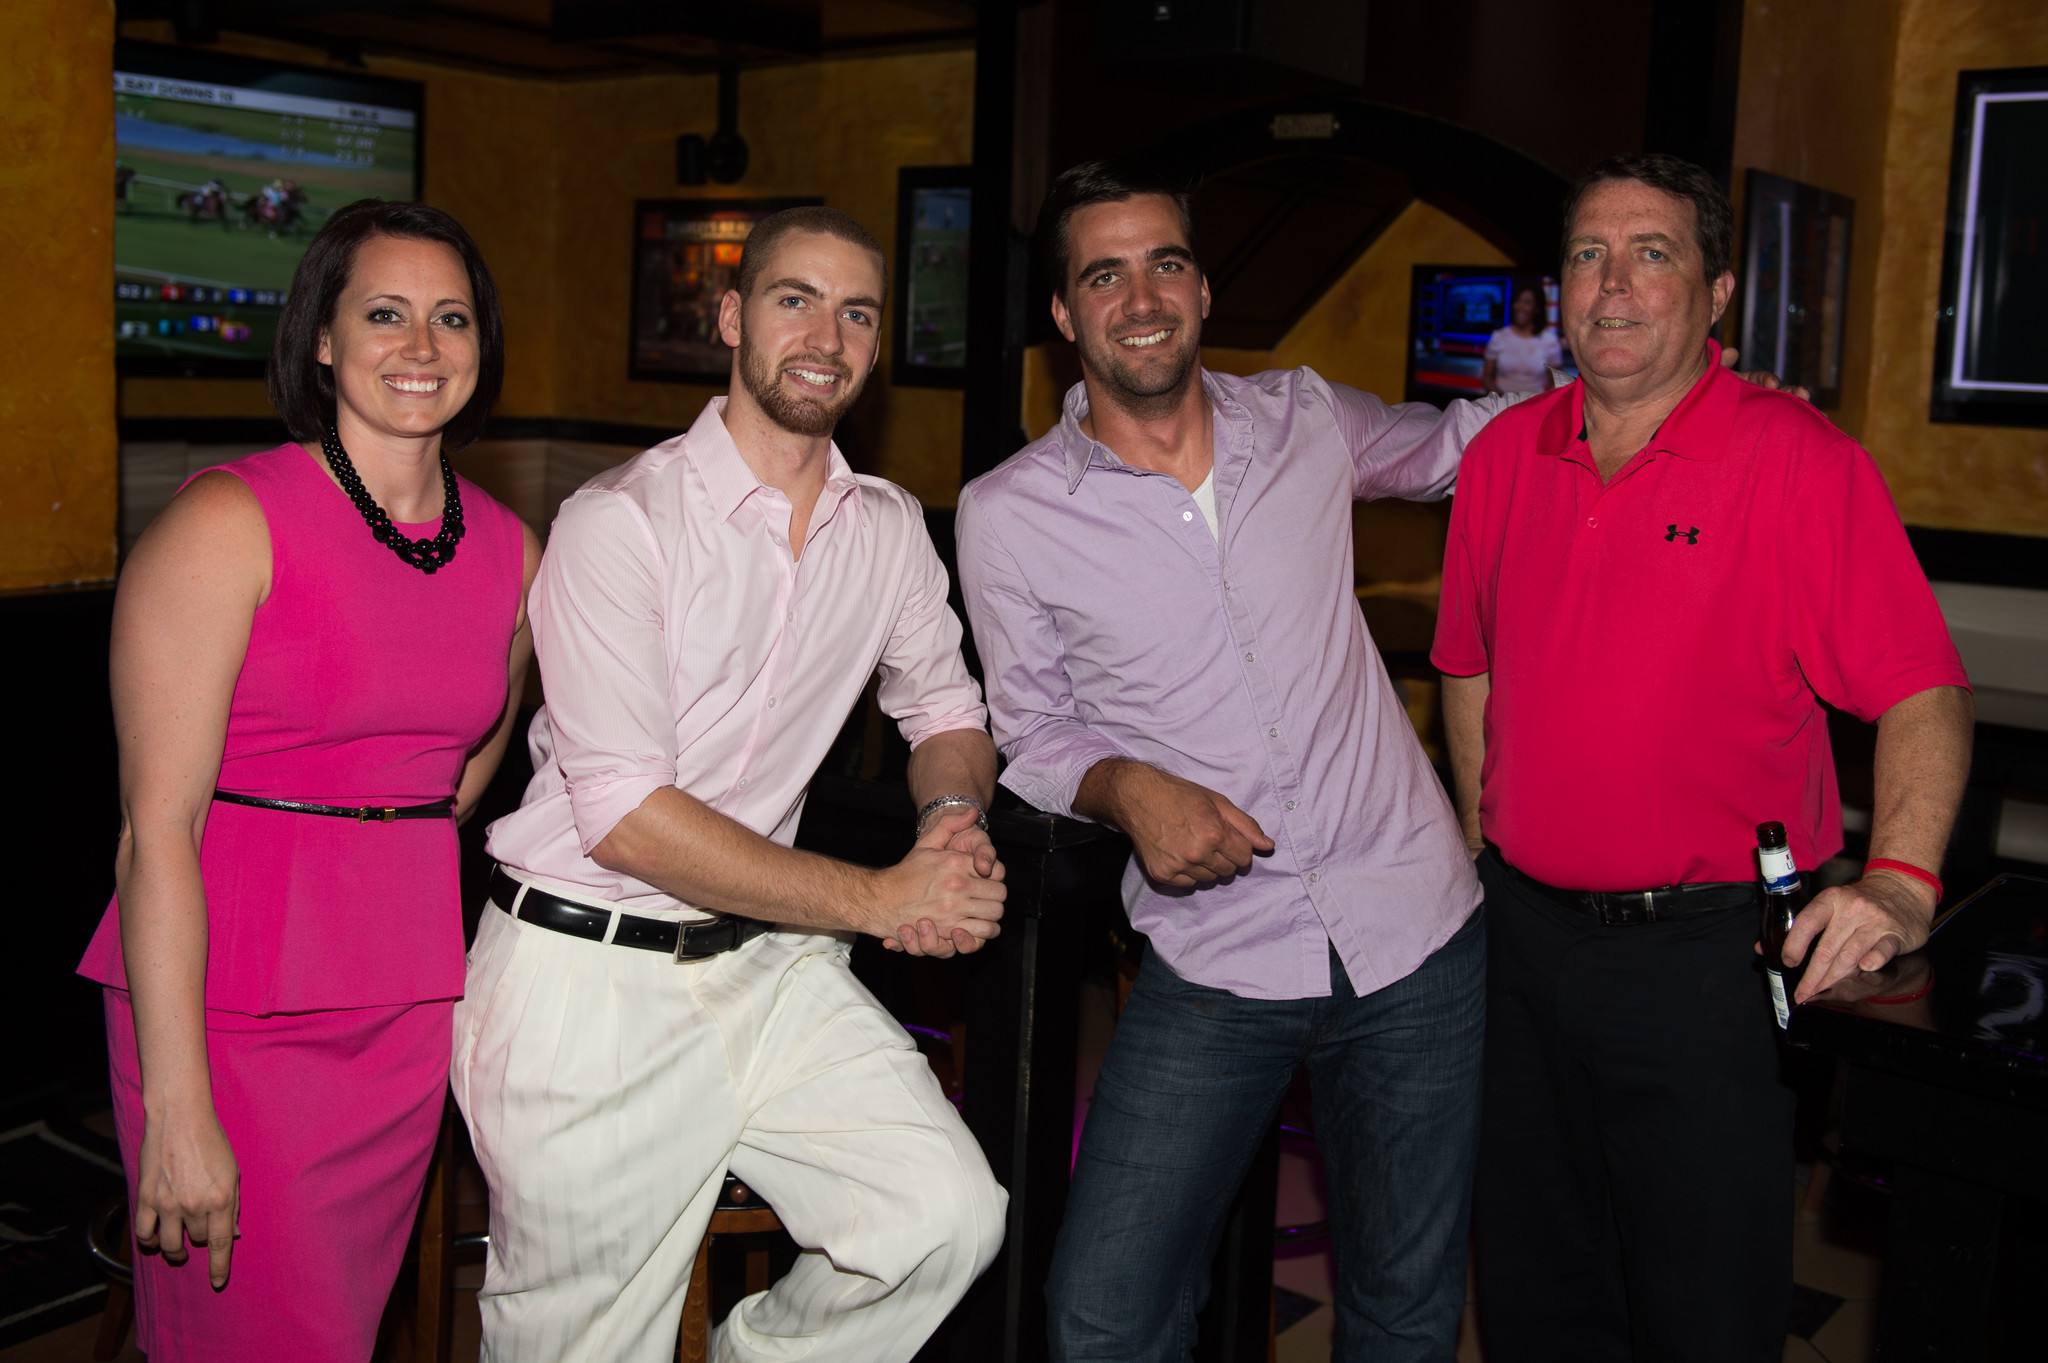 Society Scene photos - Green Goes Pink at Stout Sports Bar & Grill to Benefit Glam-a-THON